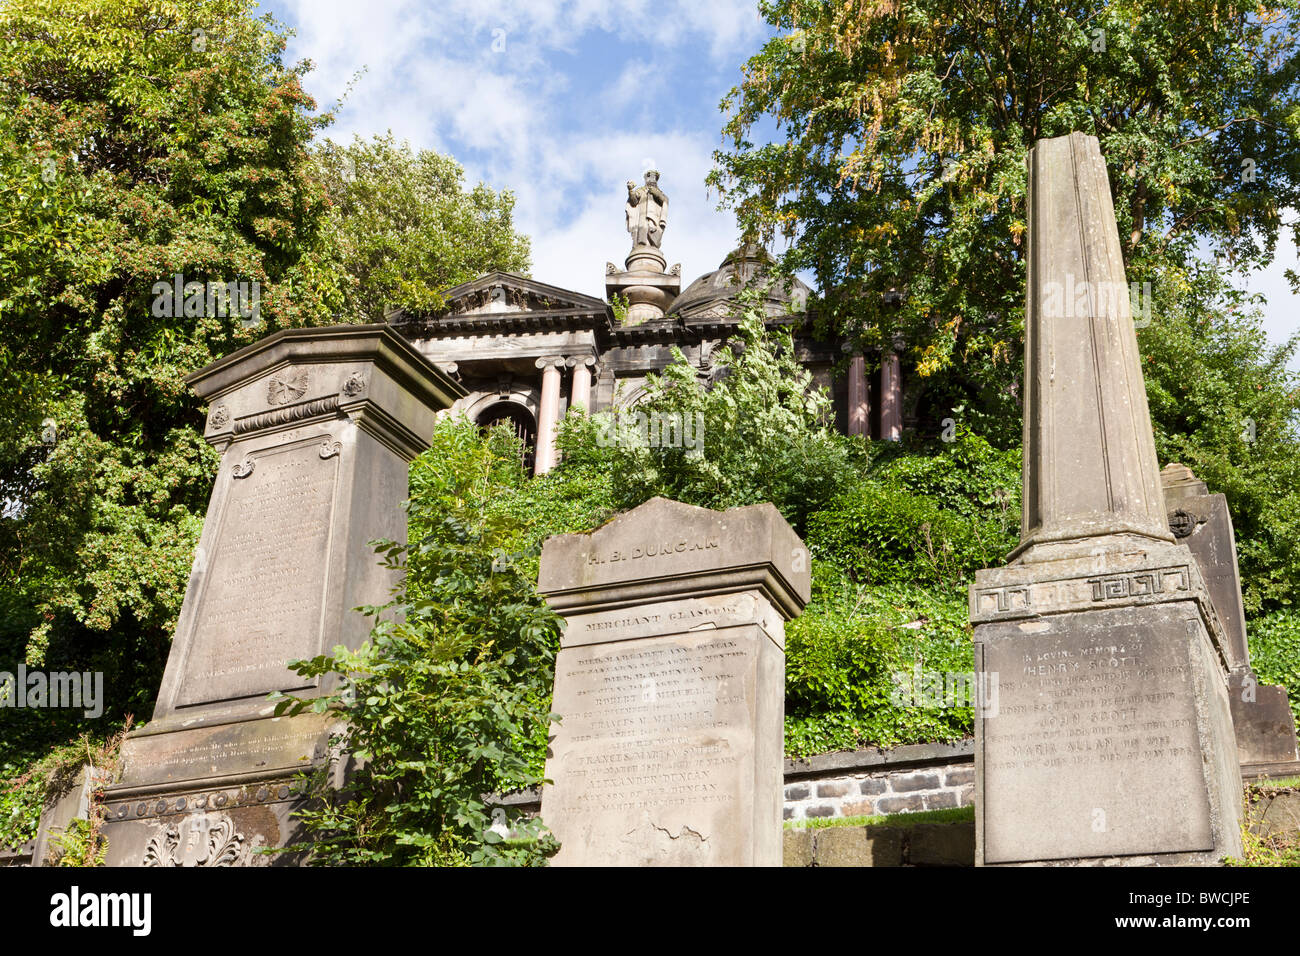 Memorials in the Glasgow Necropolis which lies to the east of Glasgow Cathedral, Scotland - Stock Image